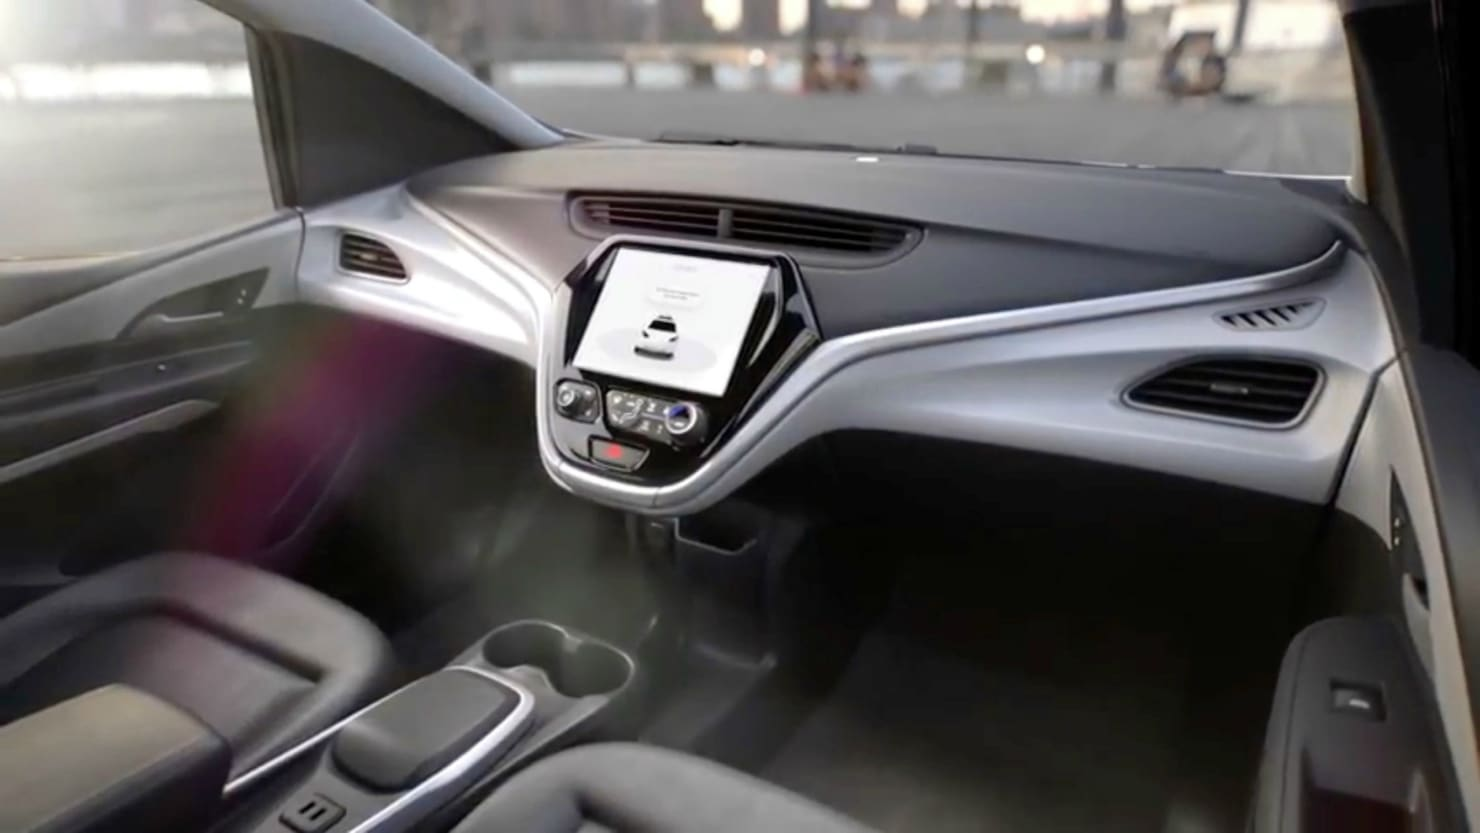 Gm Introduces Self Driving Car That Has No Steering Wheel